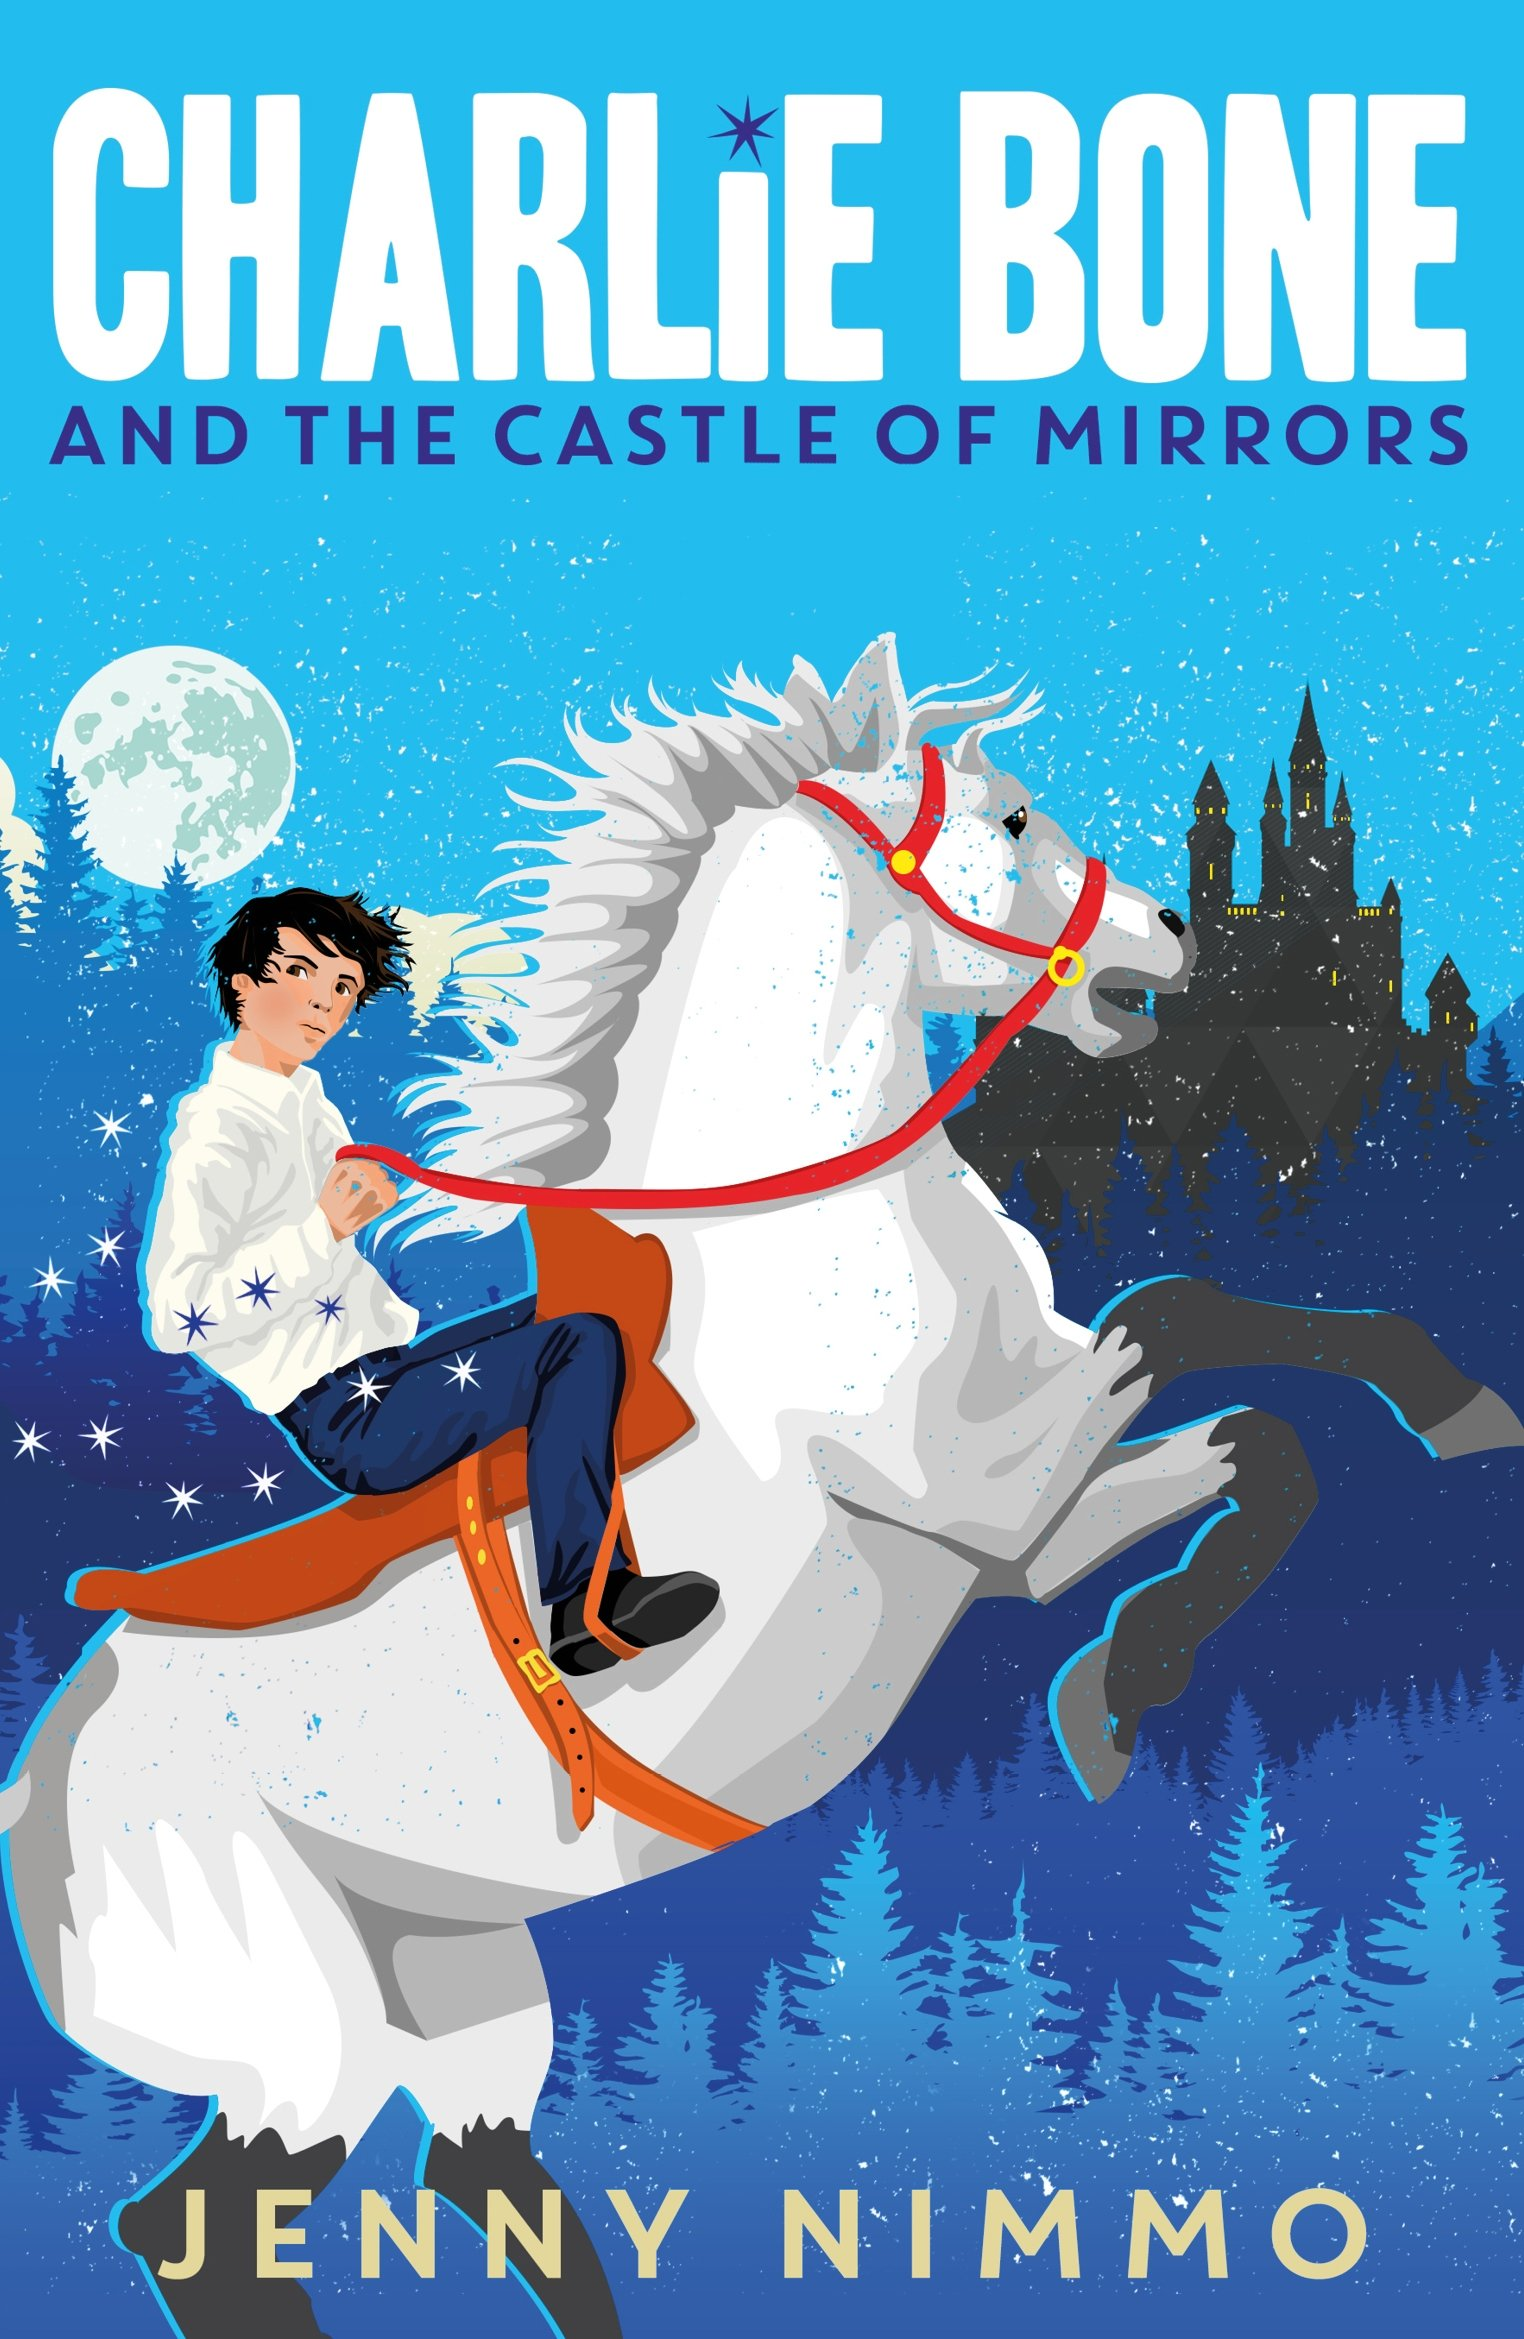 Charlie Bone And The Castle Of Mirrors: Jenny Nimmo: 9781405280952:  Amazon: Books